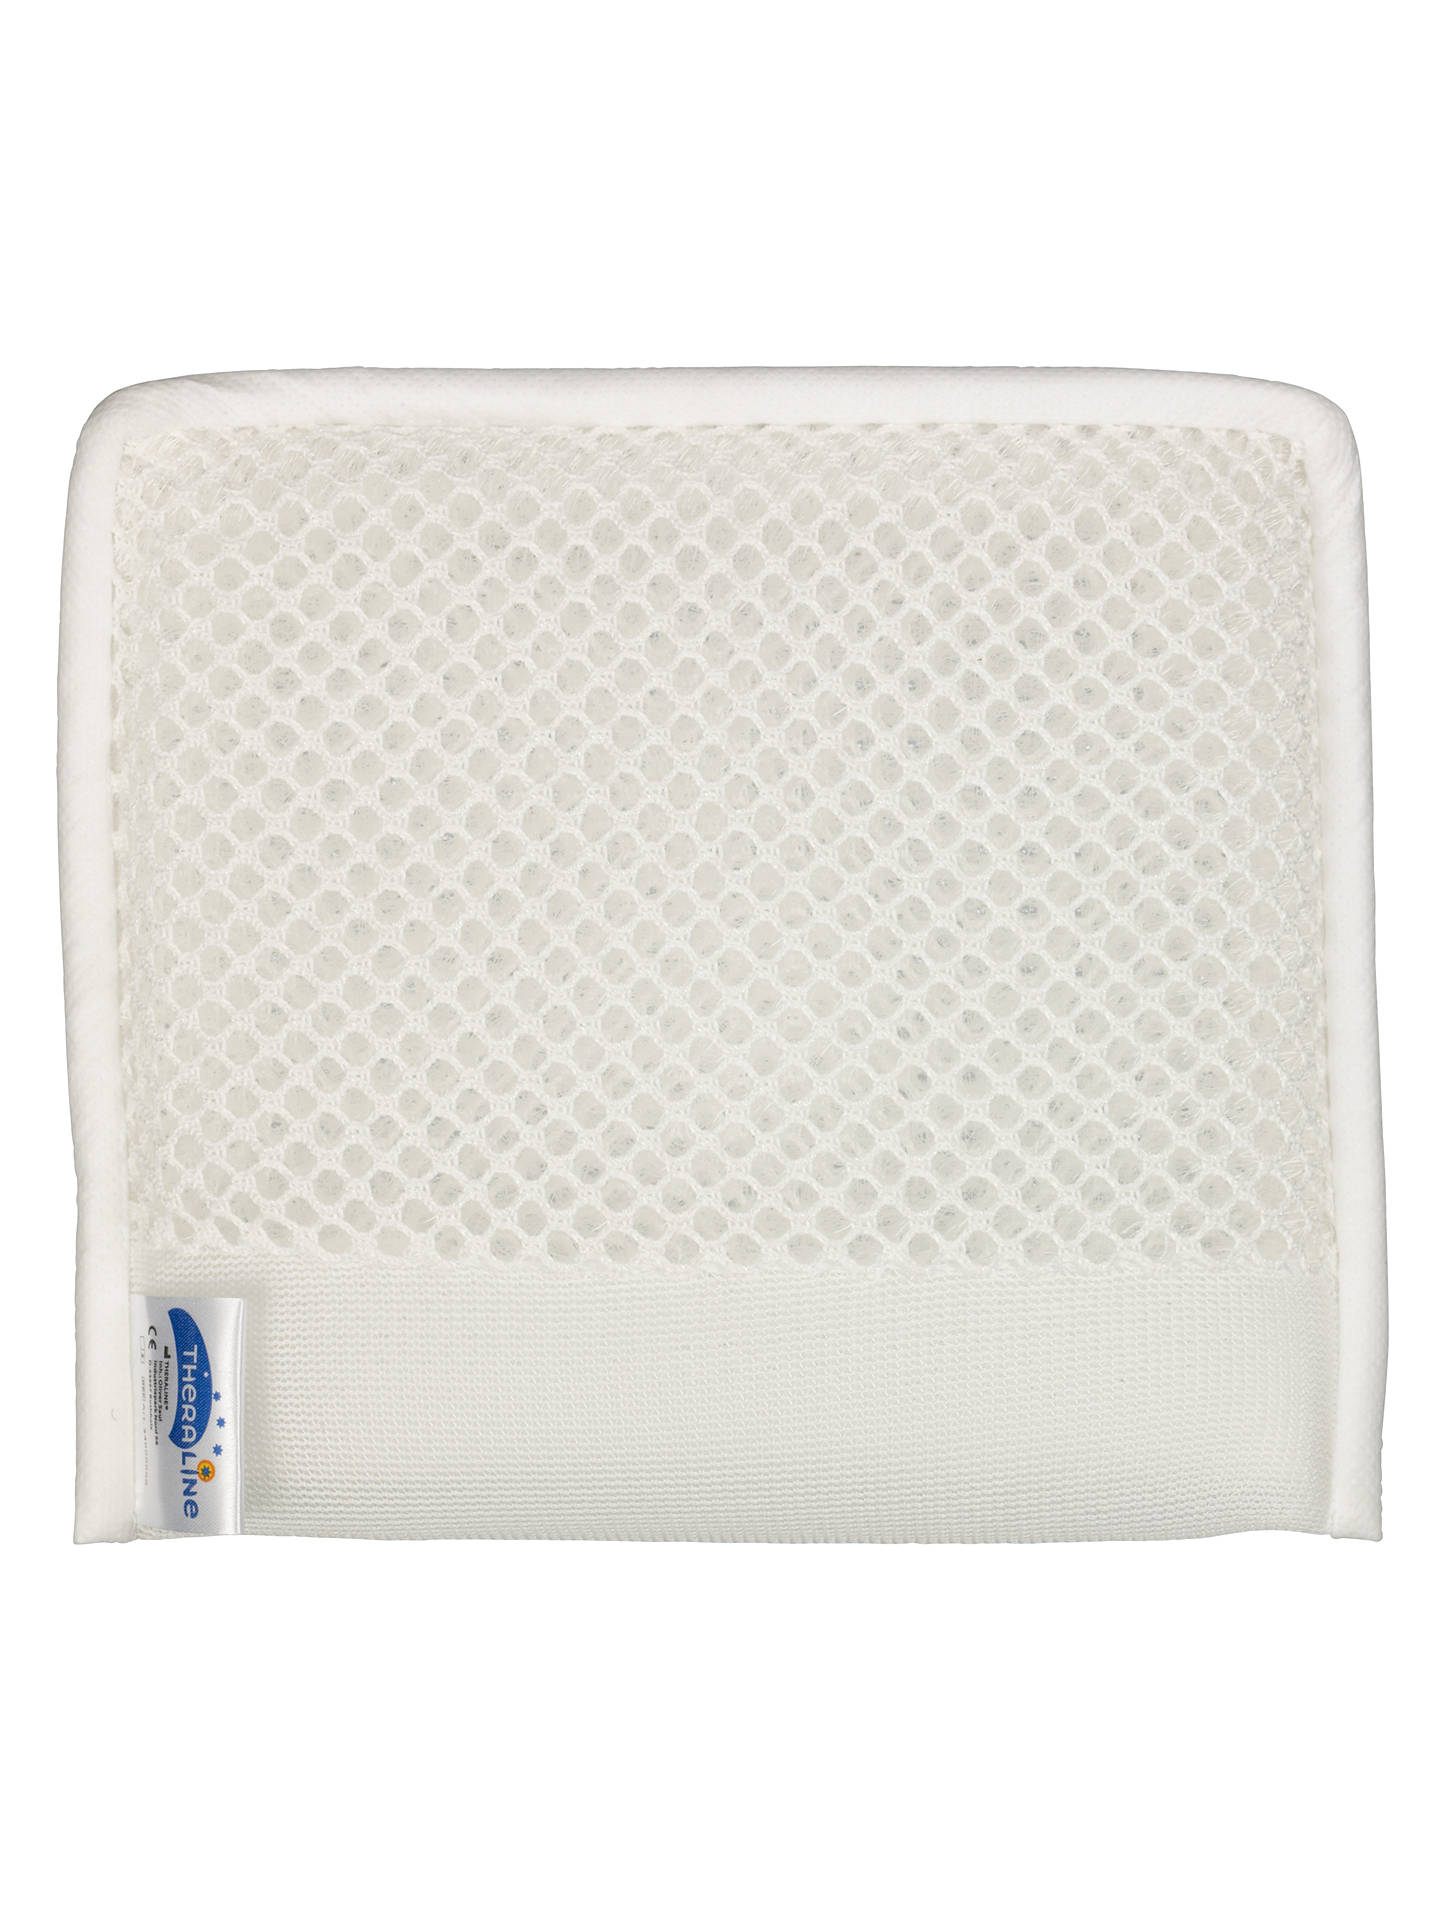 Theraline The Baby Pillow at John Lewis